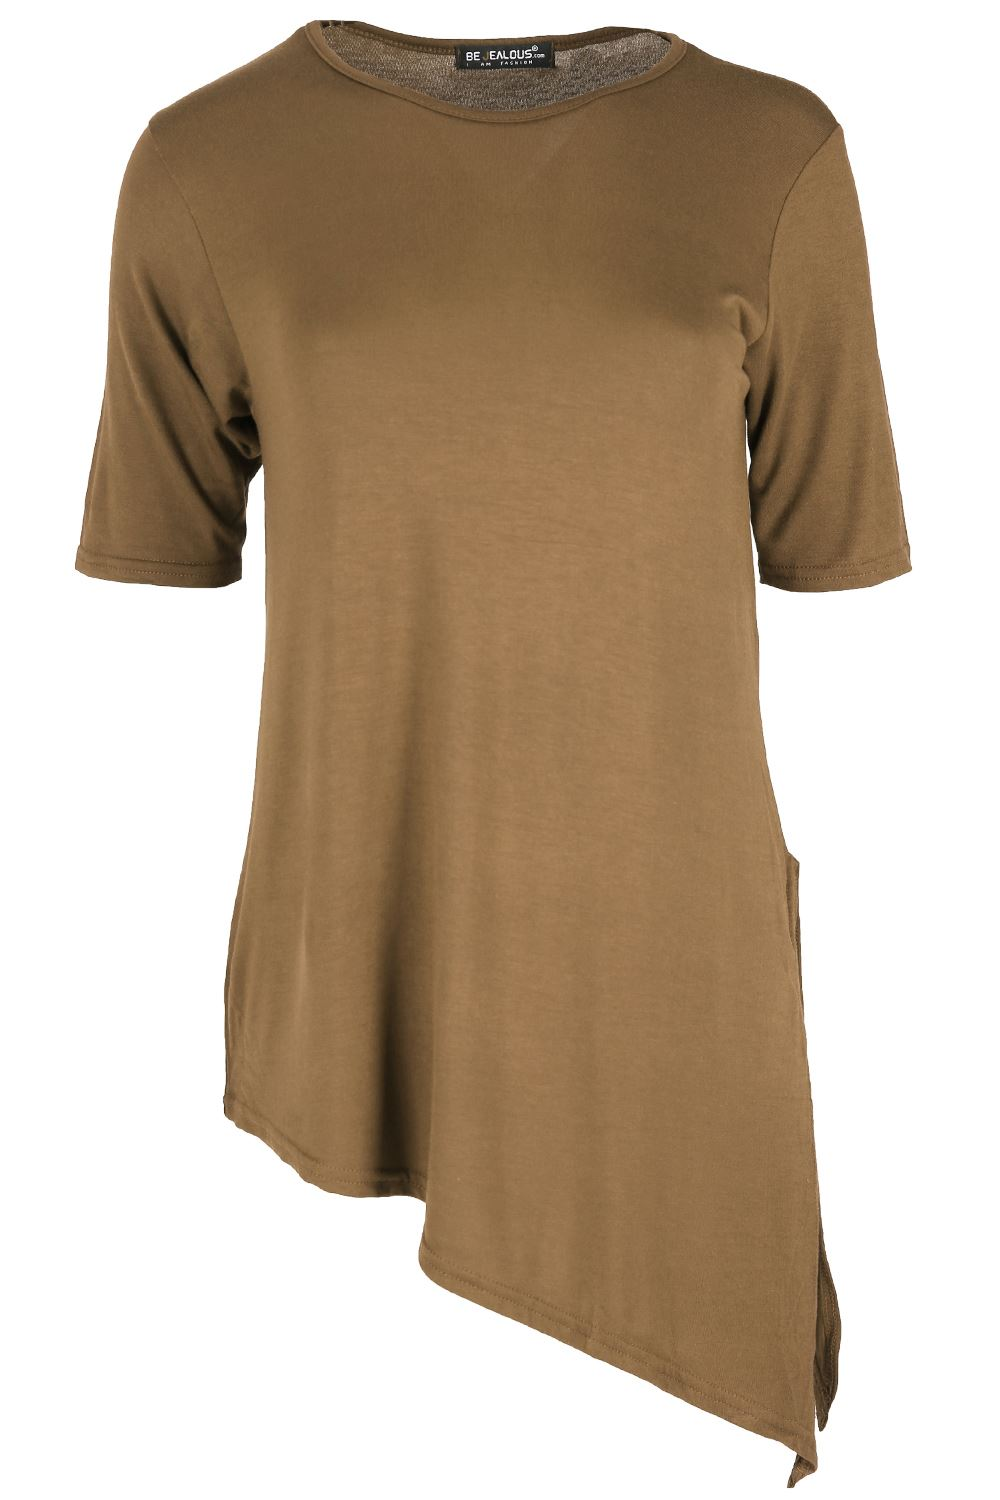 Travel Crew Neck Tiered Hollow Out Plain Bell Sleeve Blouse suits